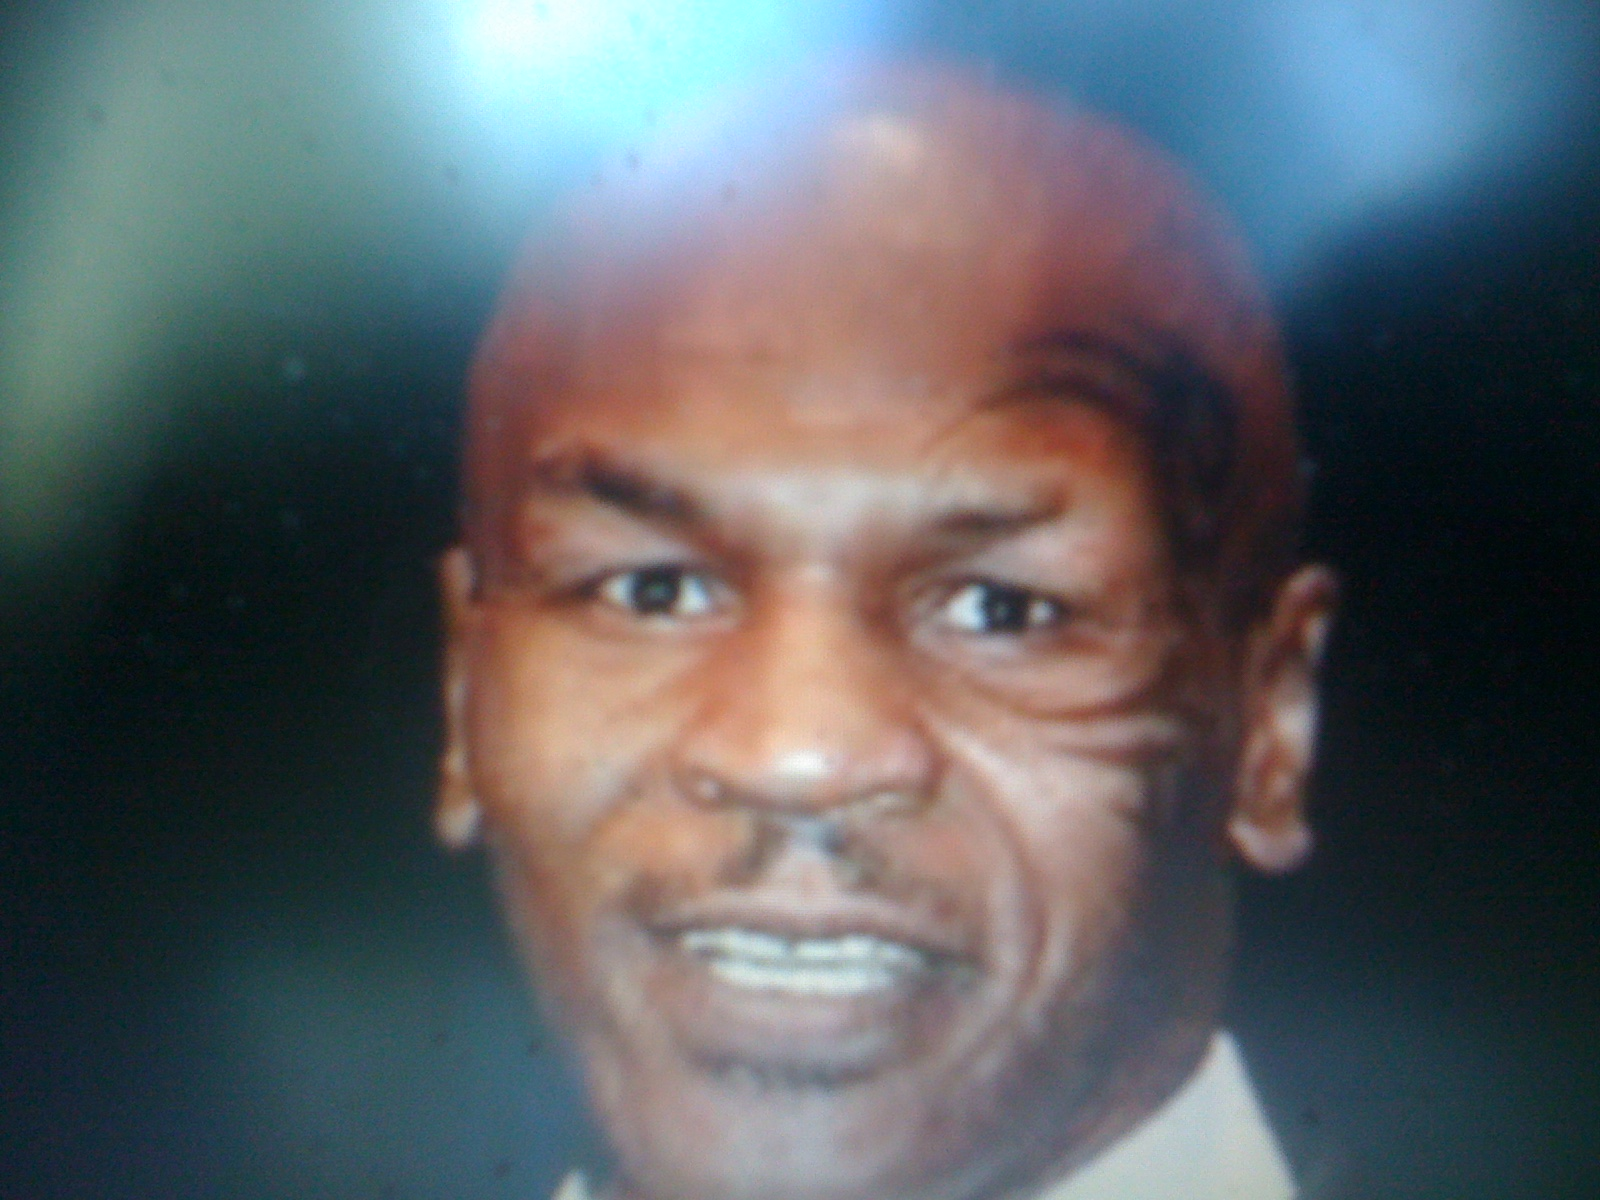 a biography of michael gerard tyson a boxer Real name: michael gerard tyson occupation: boxer date of birth: june 30, 1966 how old is mike tyson: 51 years birth place: brownsville, brooklyn, new york, us how tall is mike tyson: 5 feet 10 inches (177 m) nationality: american family: mike tyson's mother is lorna mae and father purcell tyson.